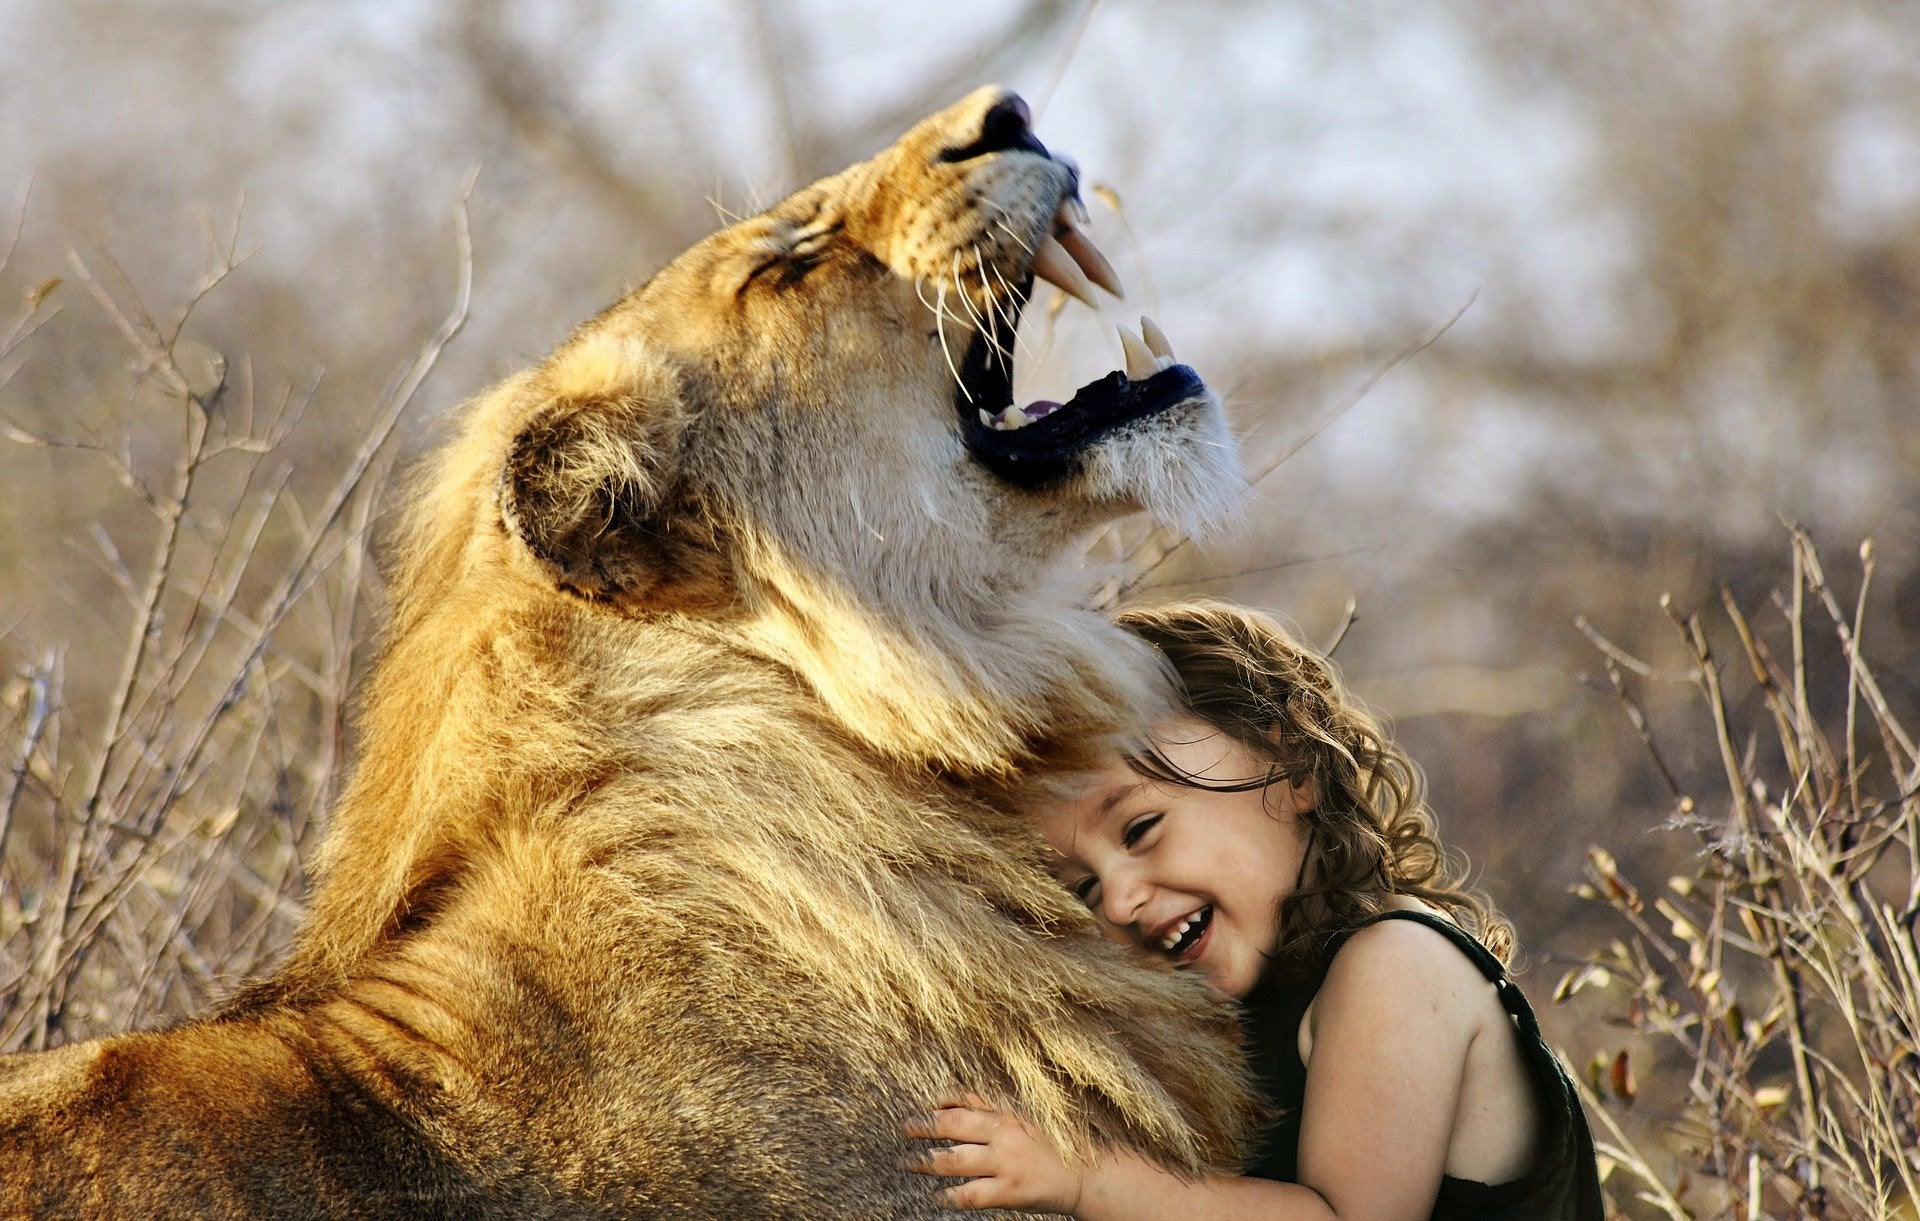 A digitally manipulated image of a girl hugging a lion